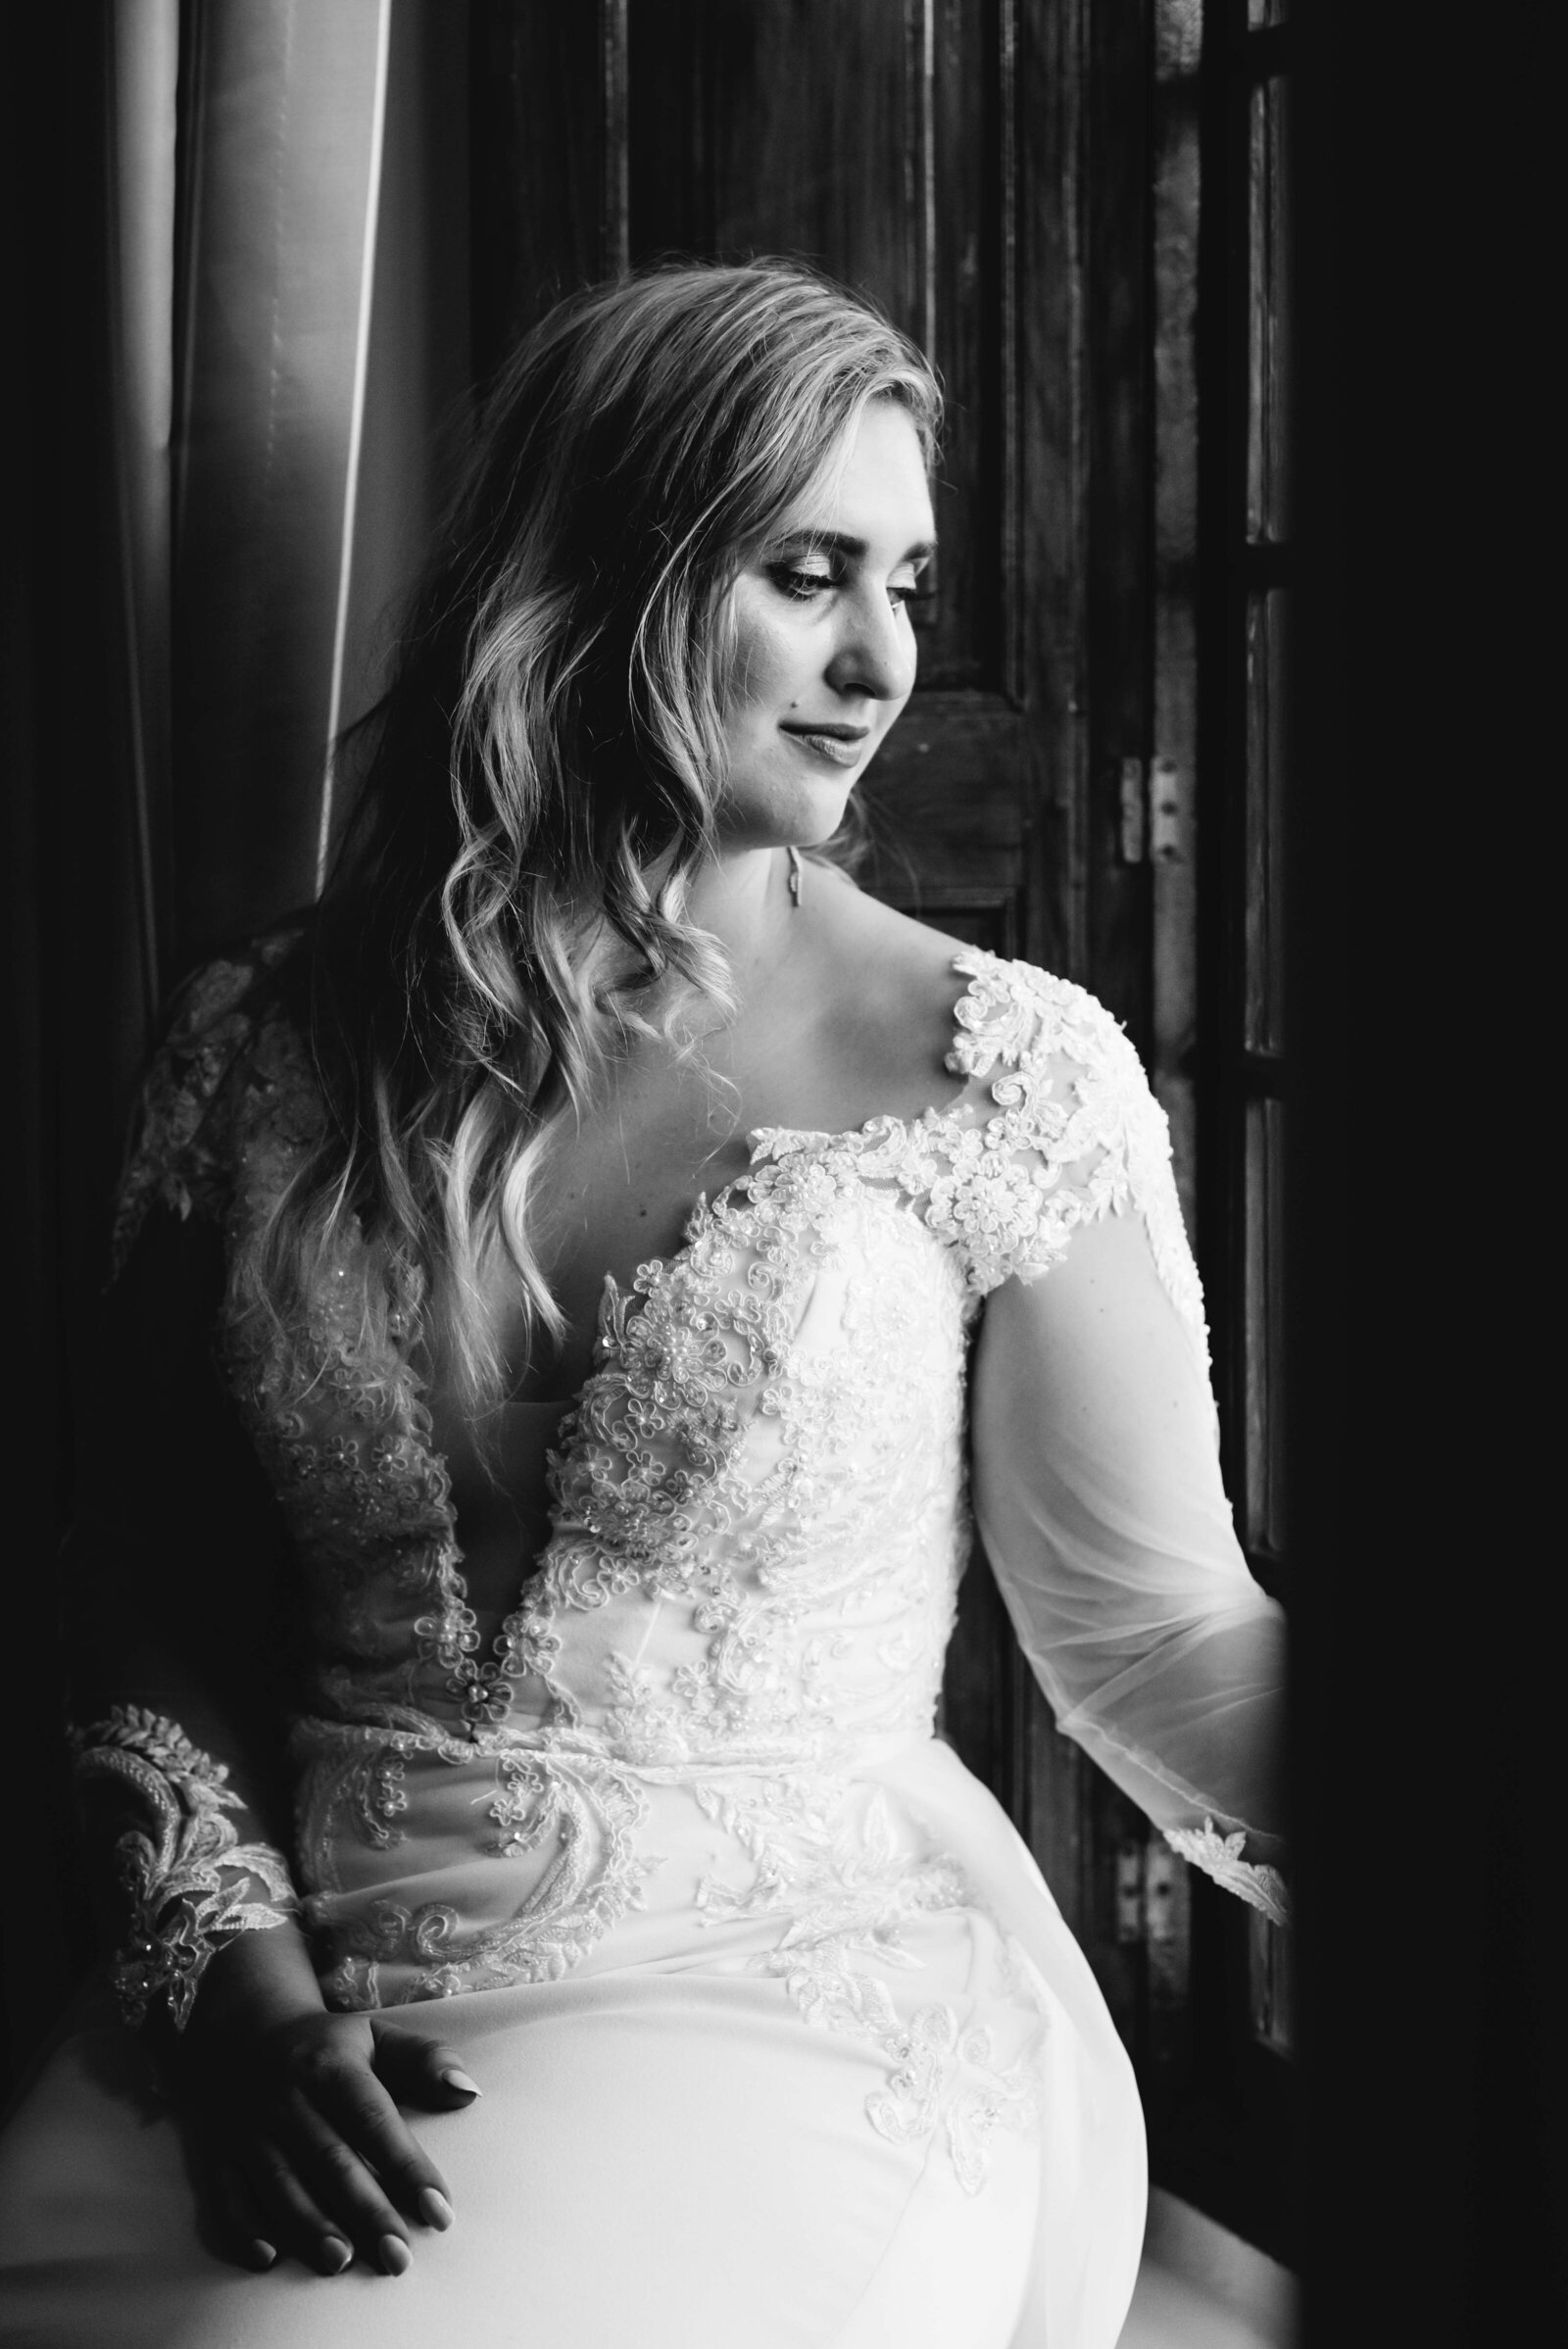 Wedding Photographer + Cape Town venue +Elri Photography+ Weddingdress (42)